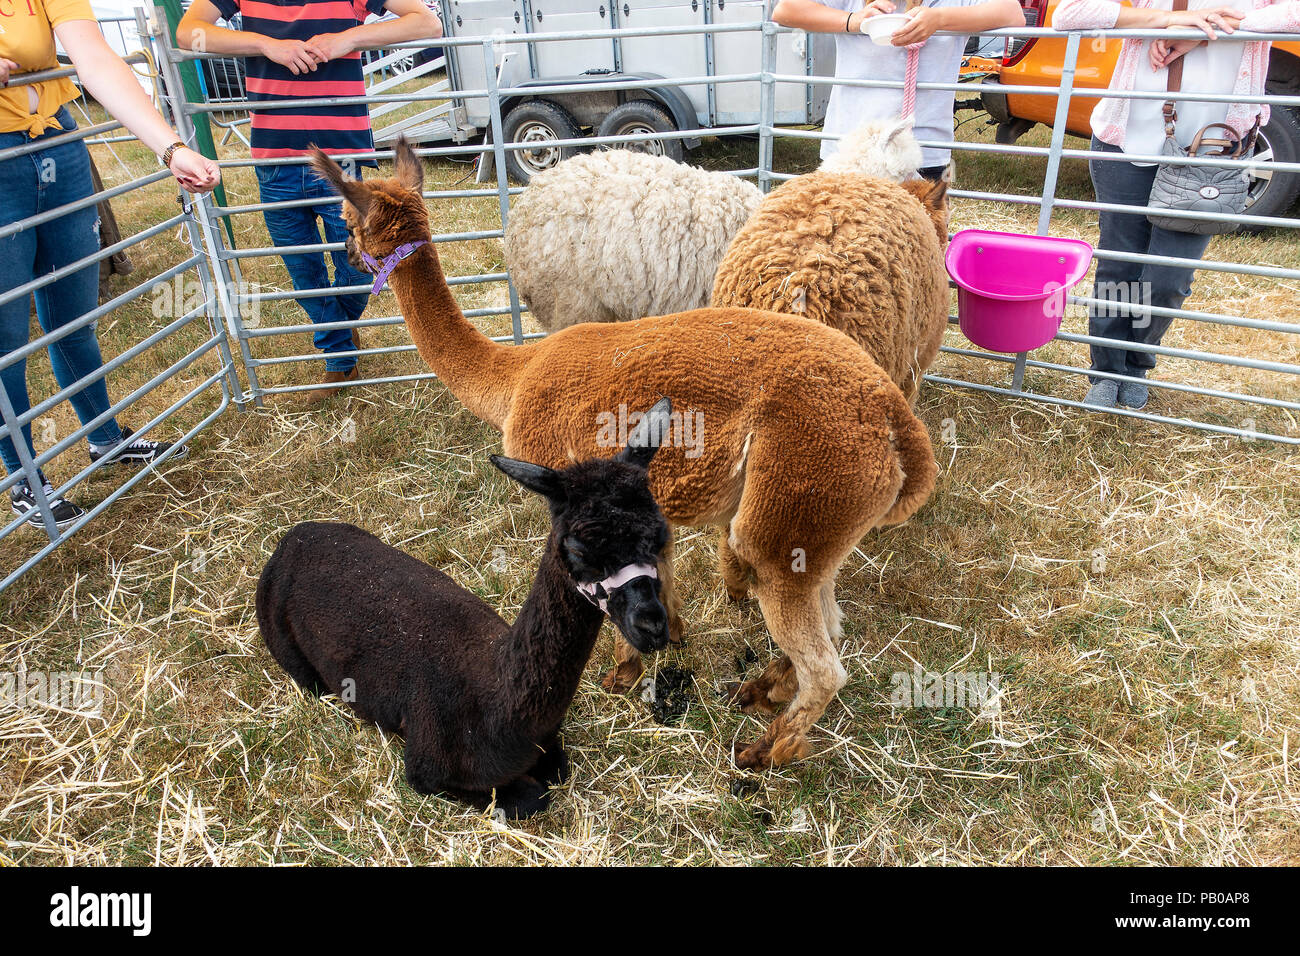 Four Alpacas in a Pen on Display at Nantwich Agricultural Show Cheshire England United Kingdom UK - Stock Image